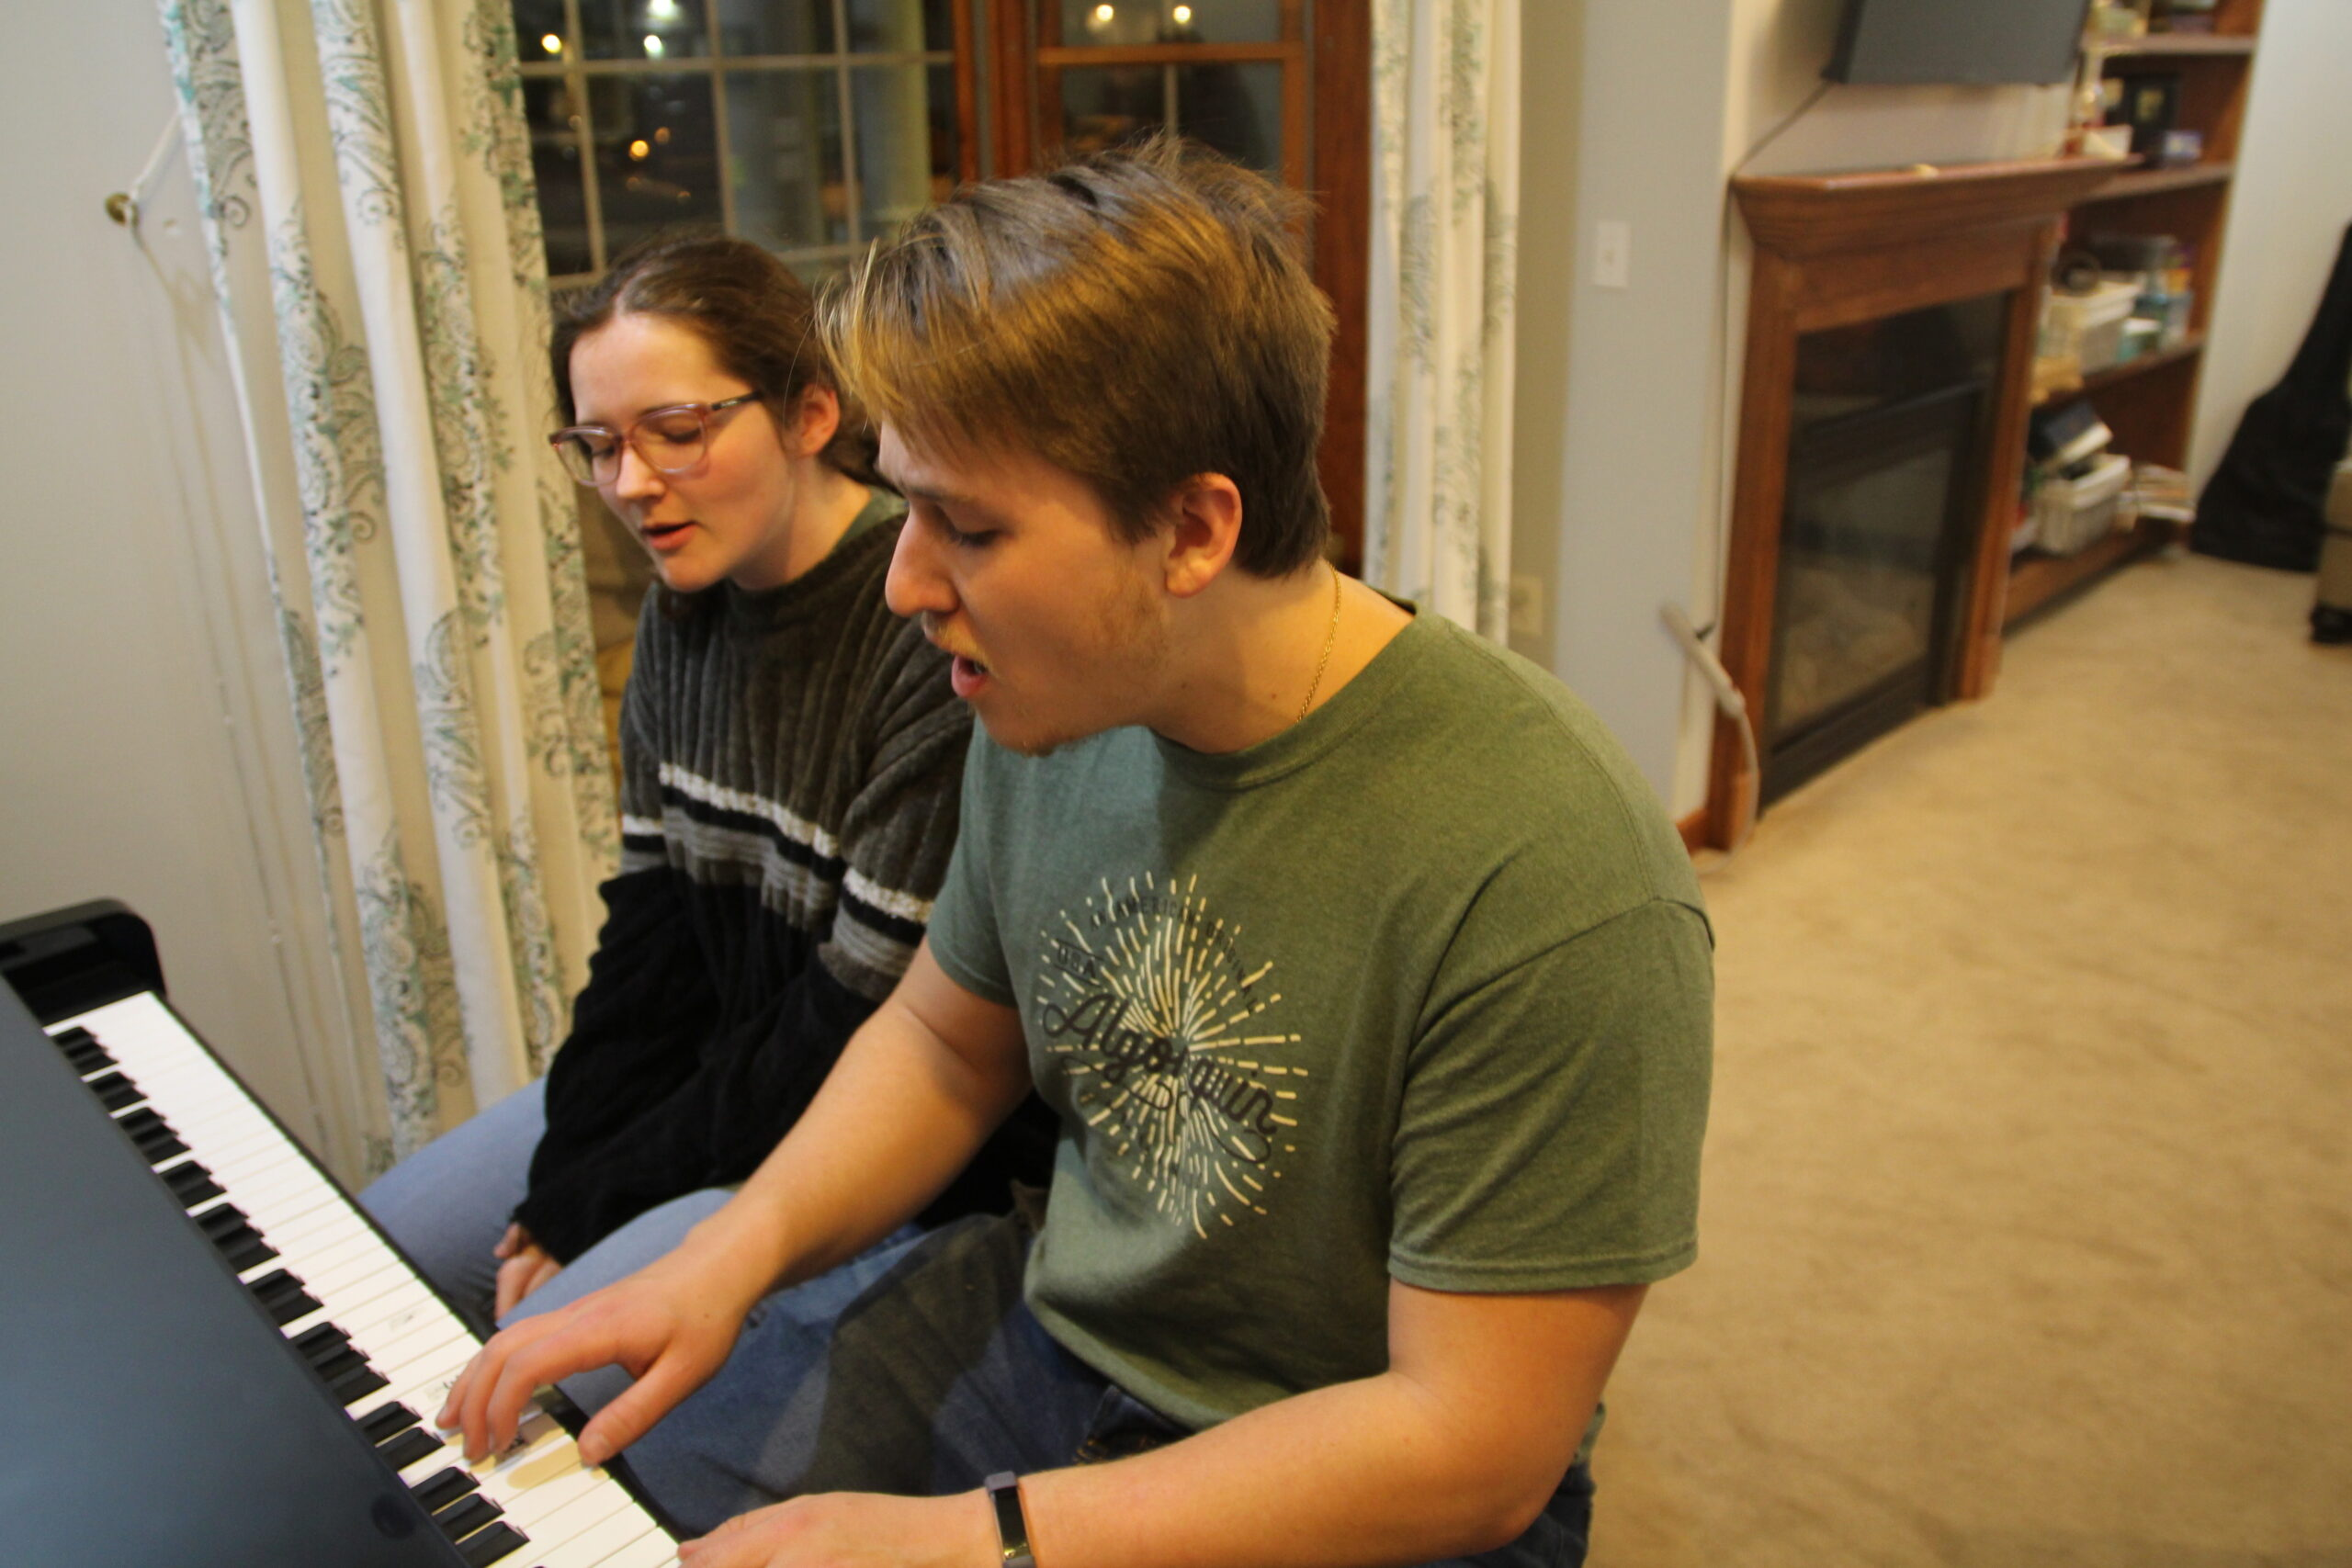 """The """"OkCupid"""" couple sings a worship song as a part of their nightly routine in Champaign, IL on Tuesday, Dec. 3, 2019."""